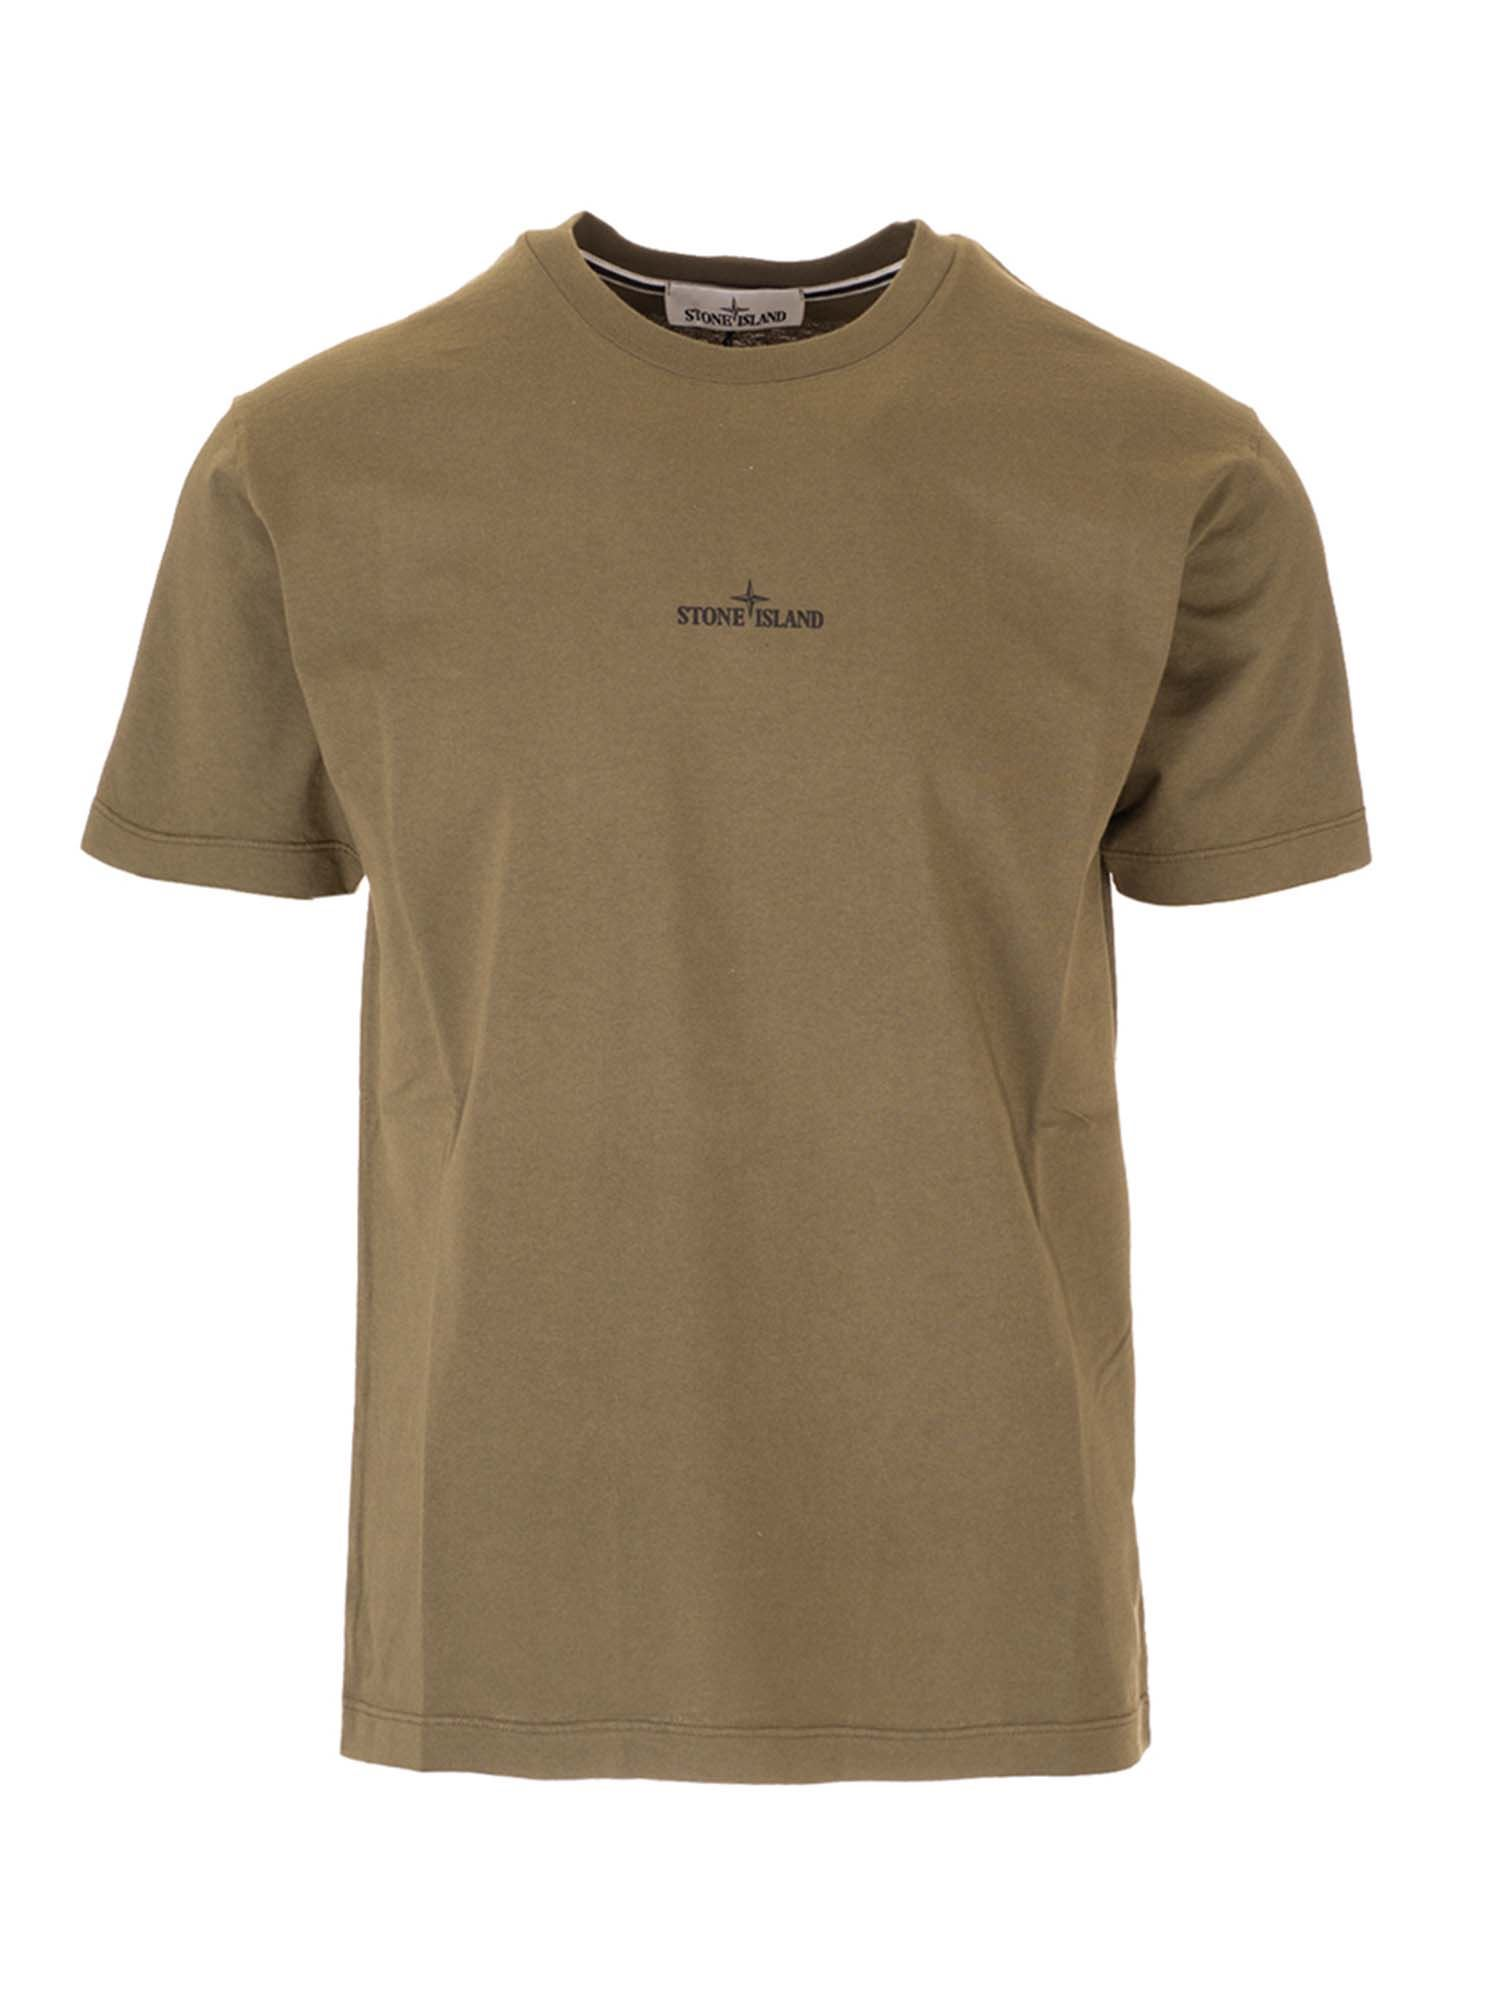 Stone Island MARBLE THREE T-SHIRT IN OLIVE GREEN